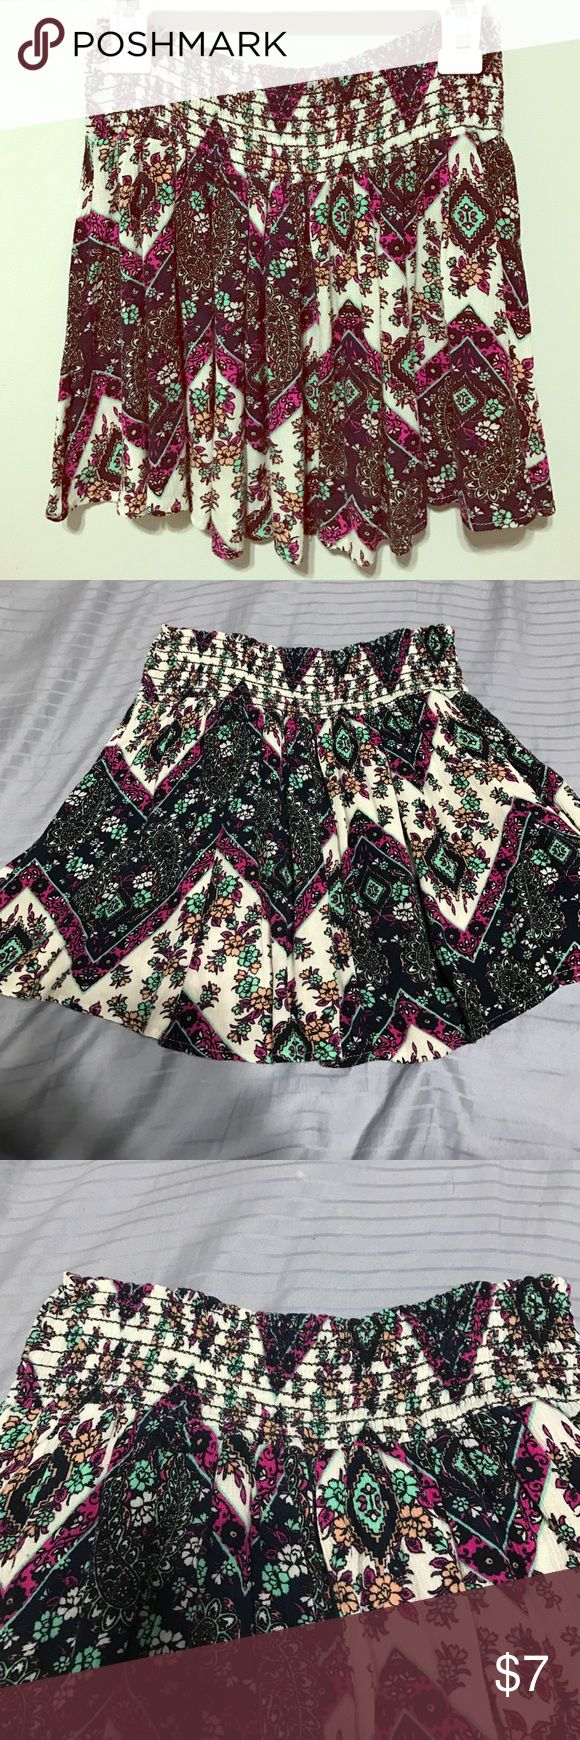 Flower tribal skirt Stretchy waist, flower tribal pattern, good material and flowey . LA Hearts Skirts Mini